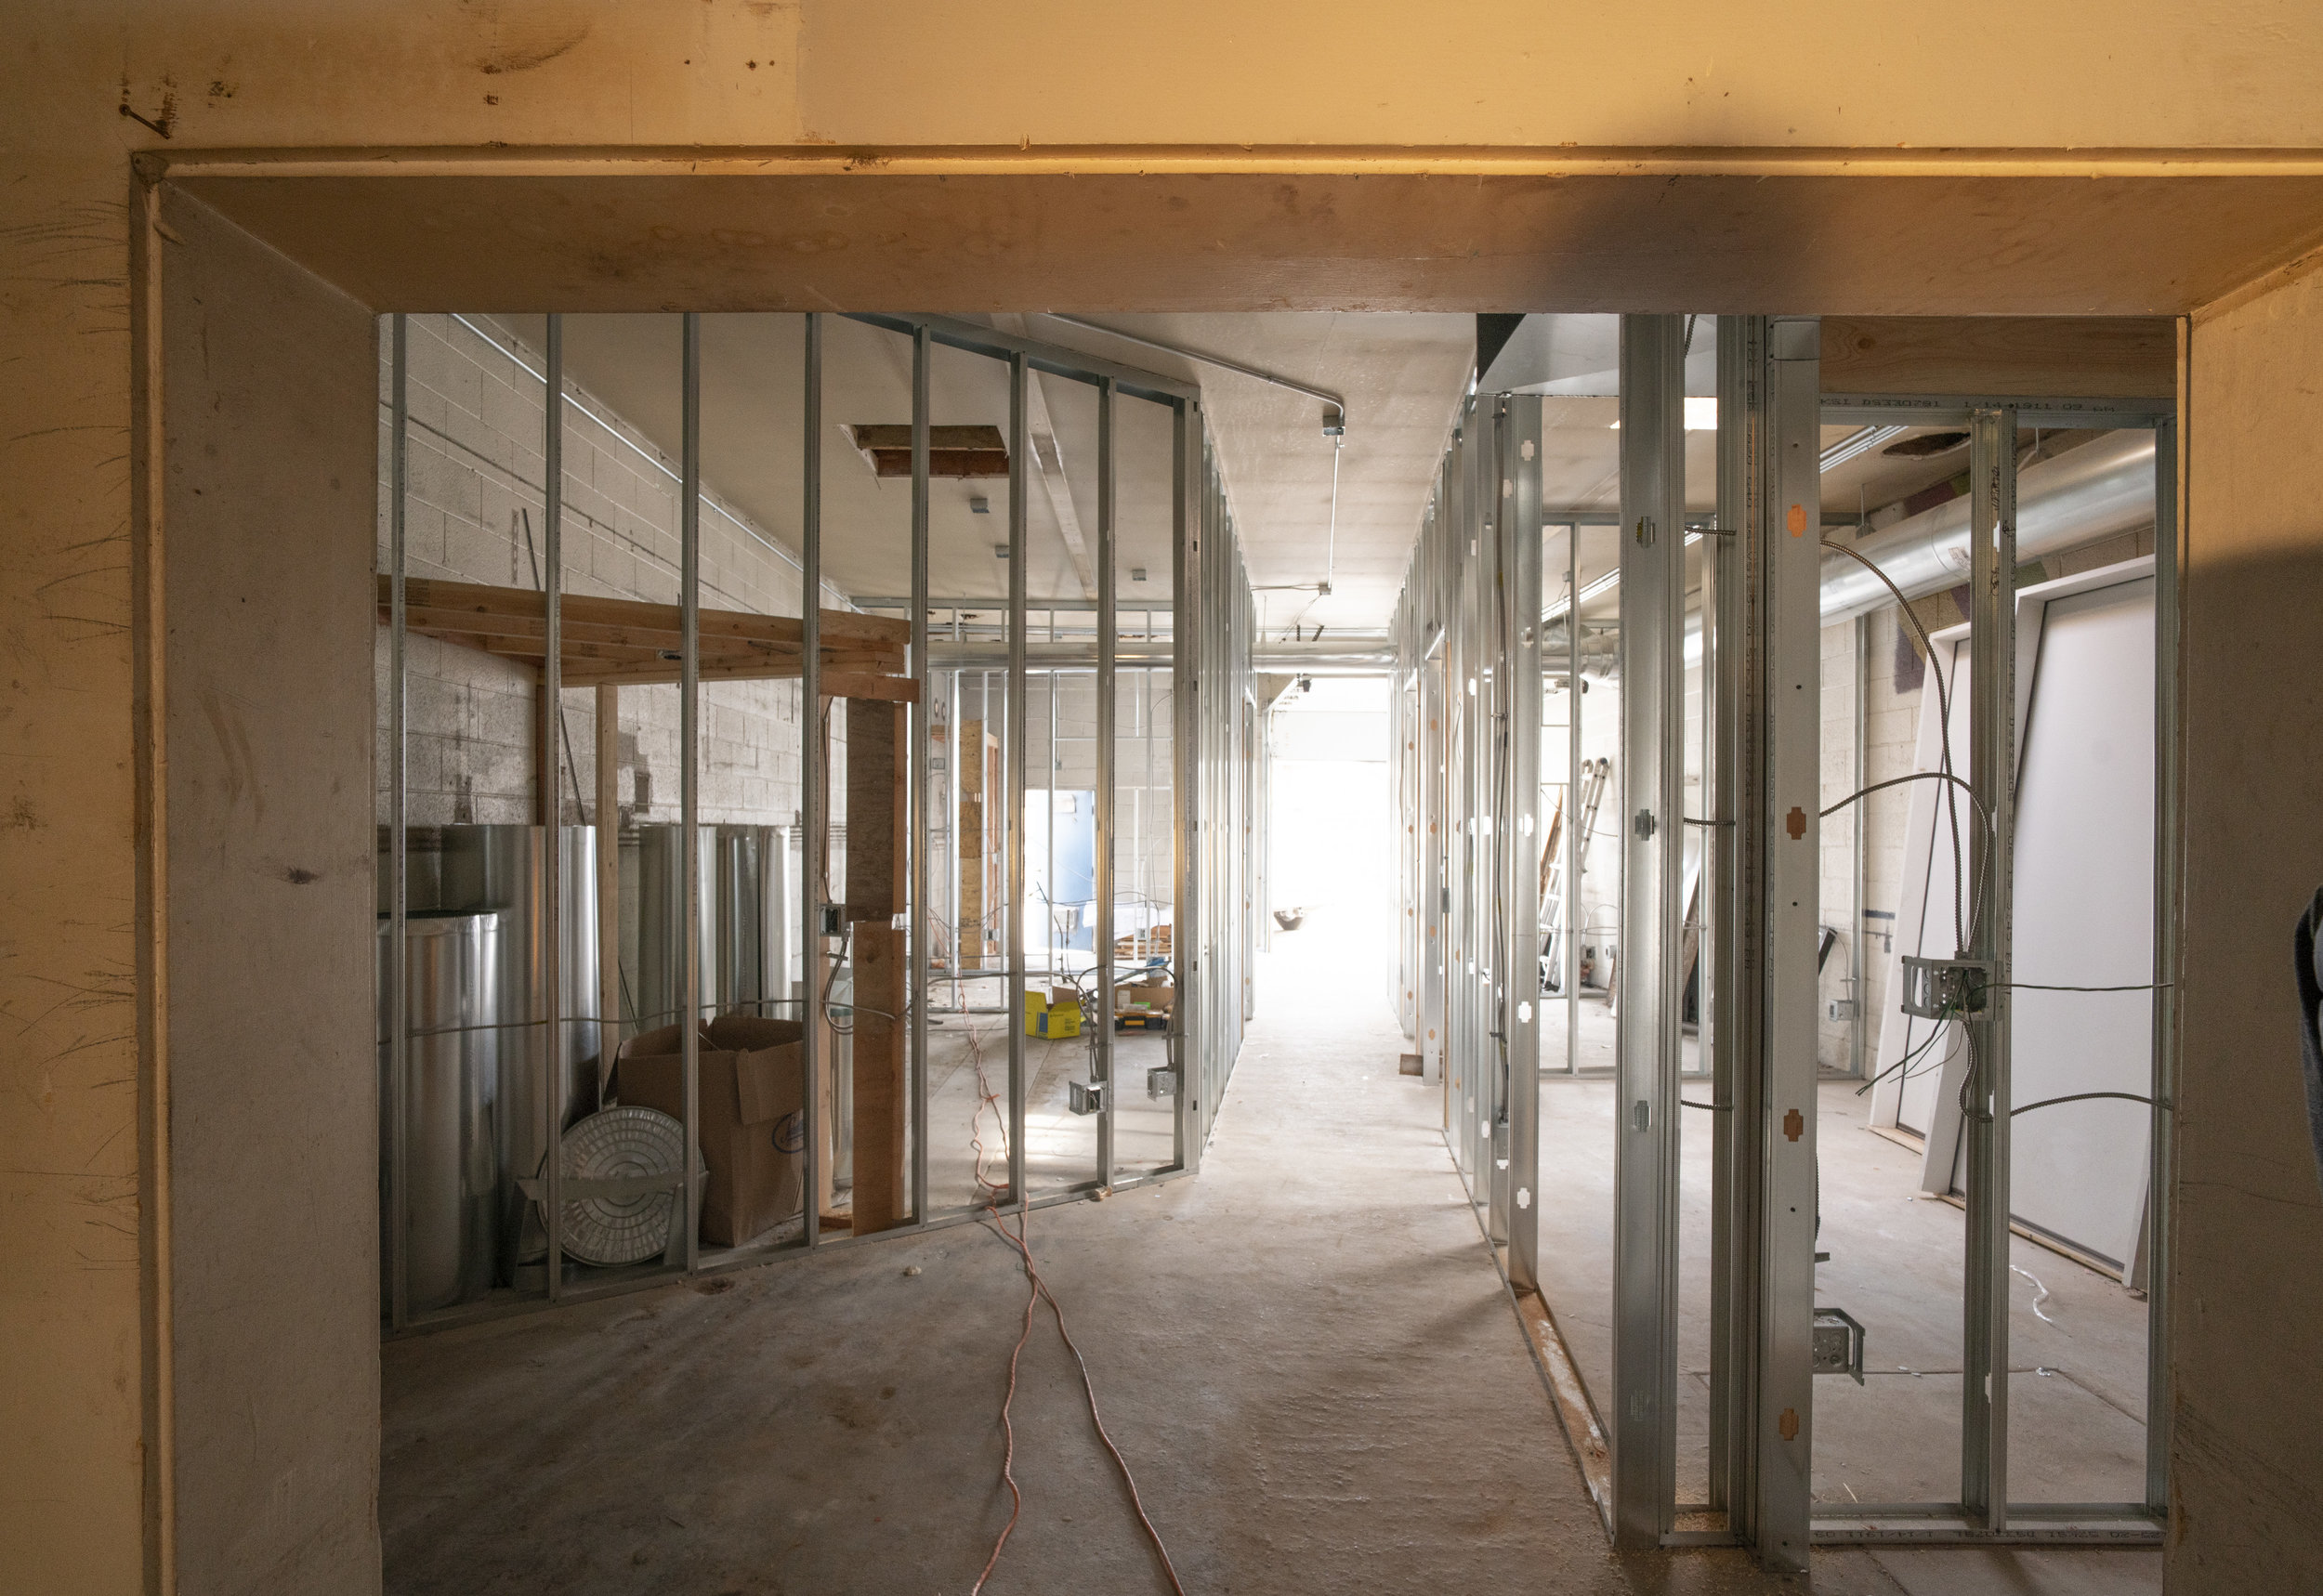 2019_0319_HodginArch_SantaFeStudio_Construction_0010.jpg